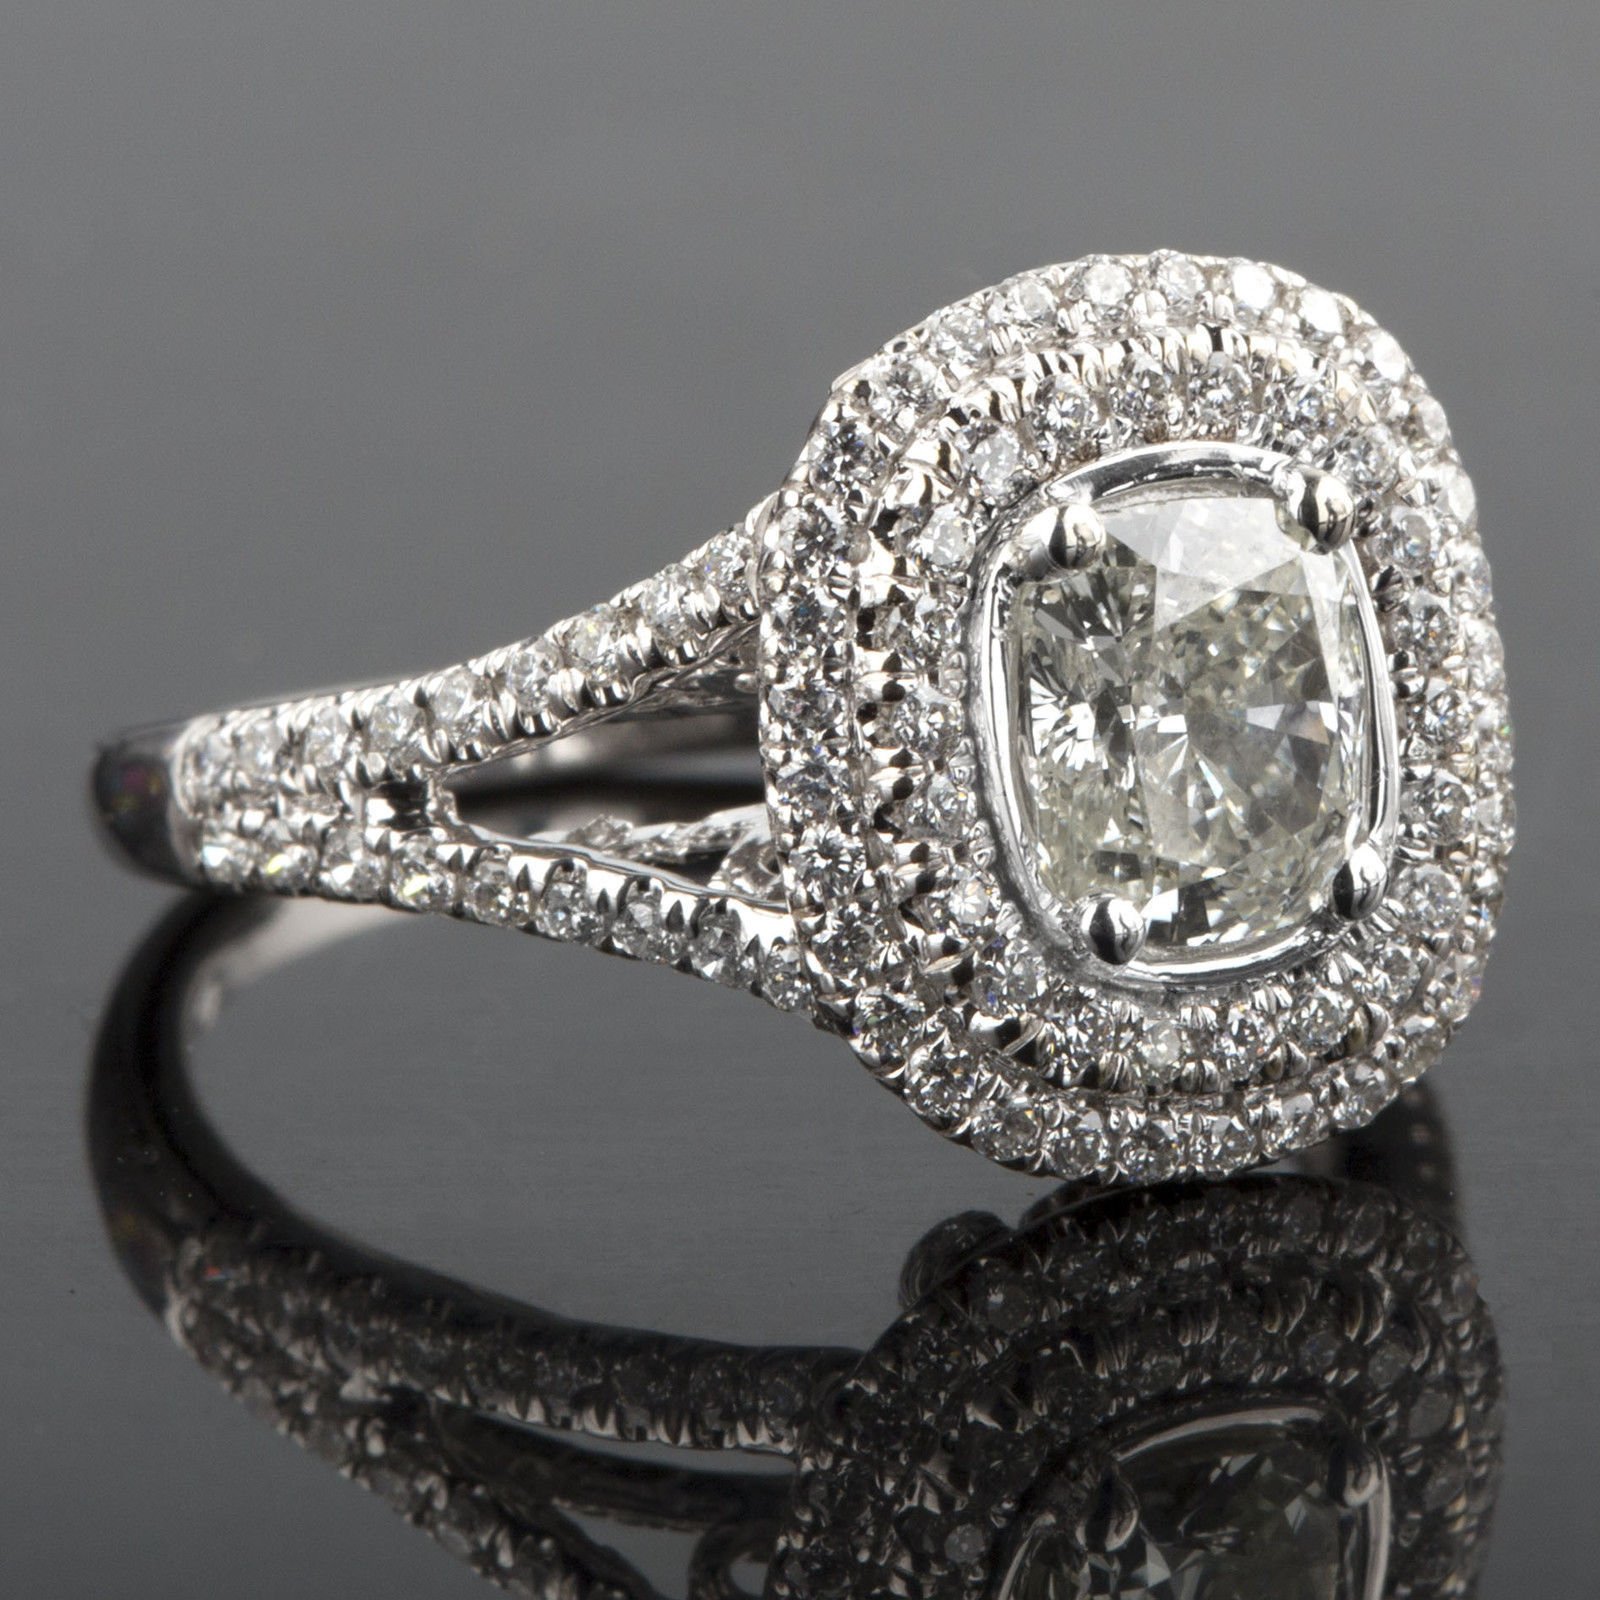 Primary image for 1.63 TCW Cushion Cut Diamond Engagement Ring Split Shank 18k White Gold